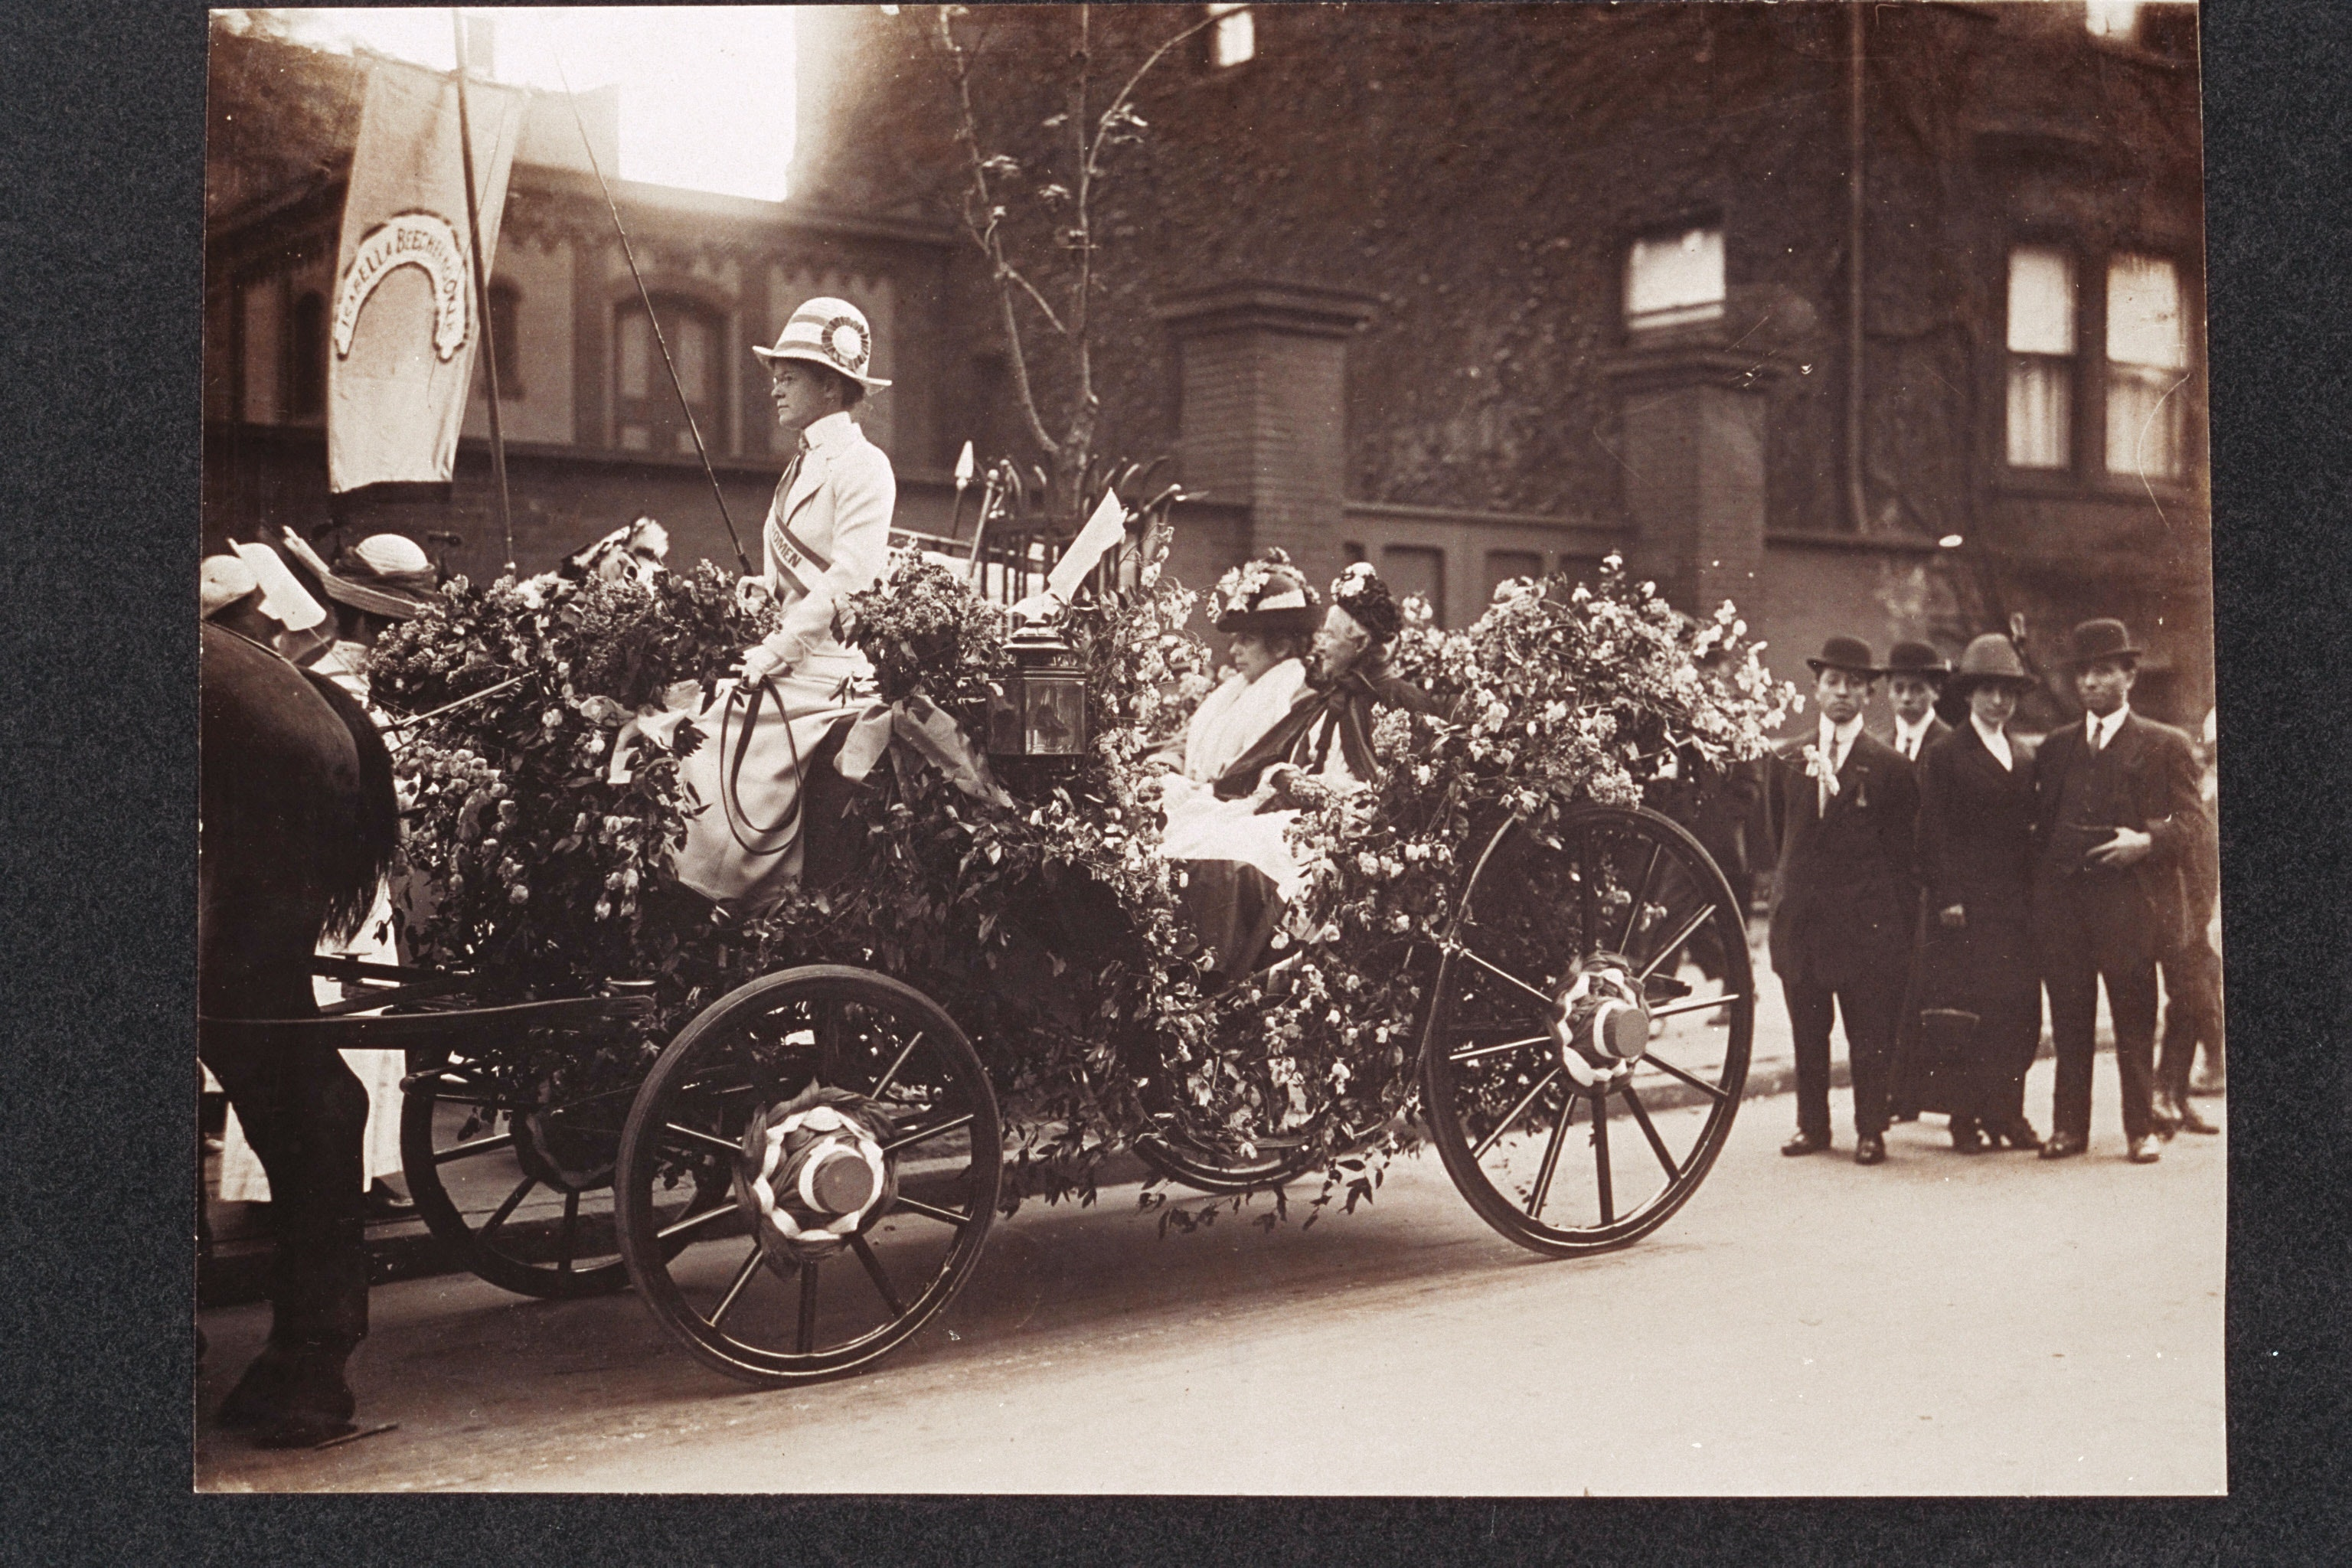 View of Antoinette Louisa Brown Blackwell (right) and Alice Stone Blackwell (left) seated in a horse-drawn carriage decorated with flowers for a parade